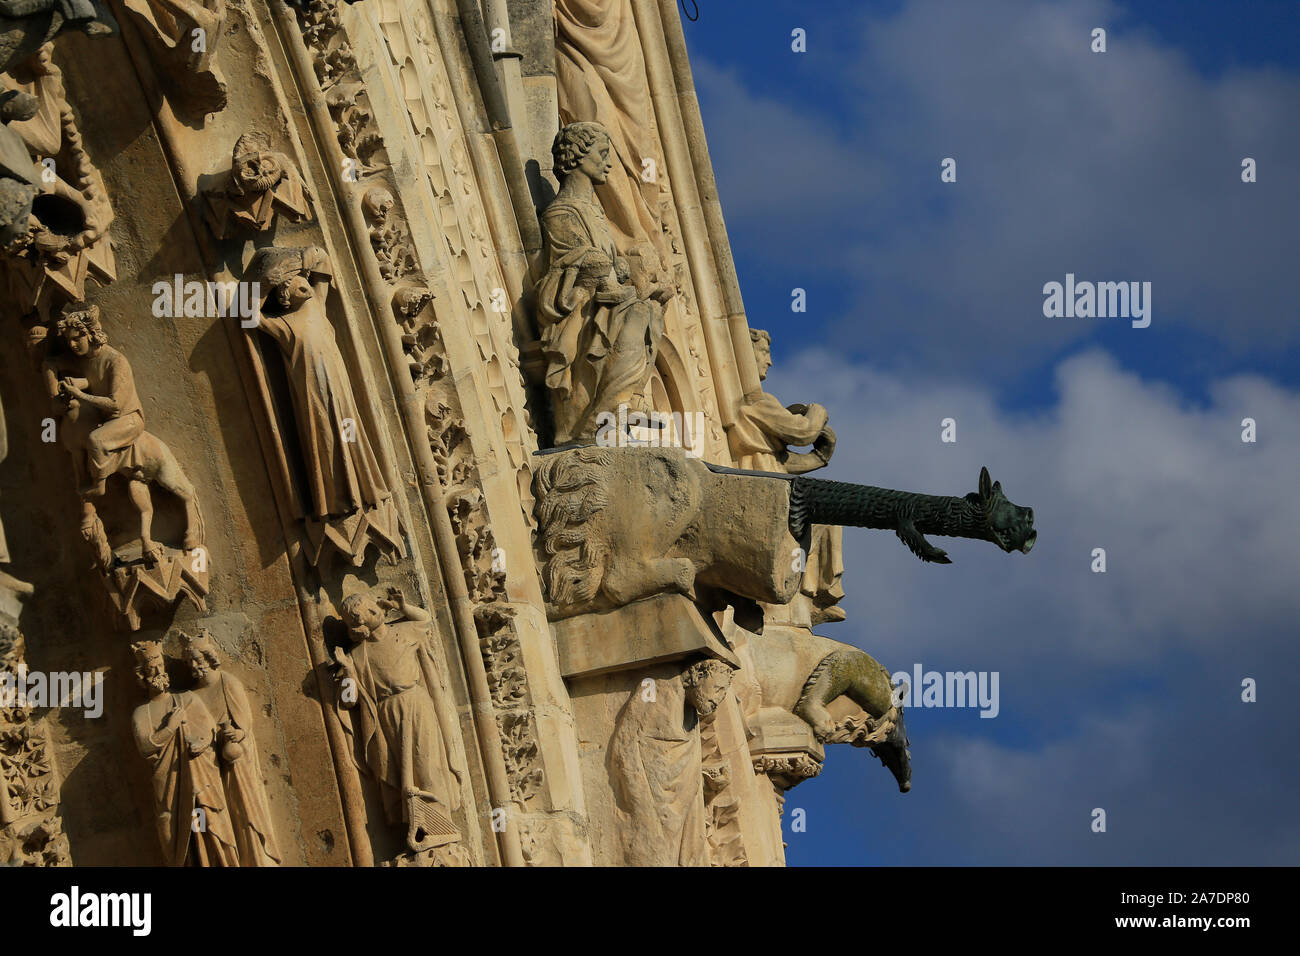 Close-up of Gargoyles on the facade of Cathedral de Notre-Dame, Reims, Champagne, France Stock Photo